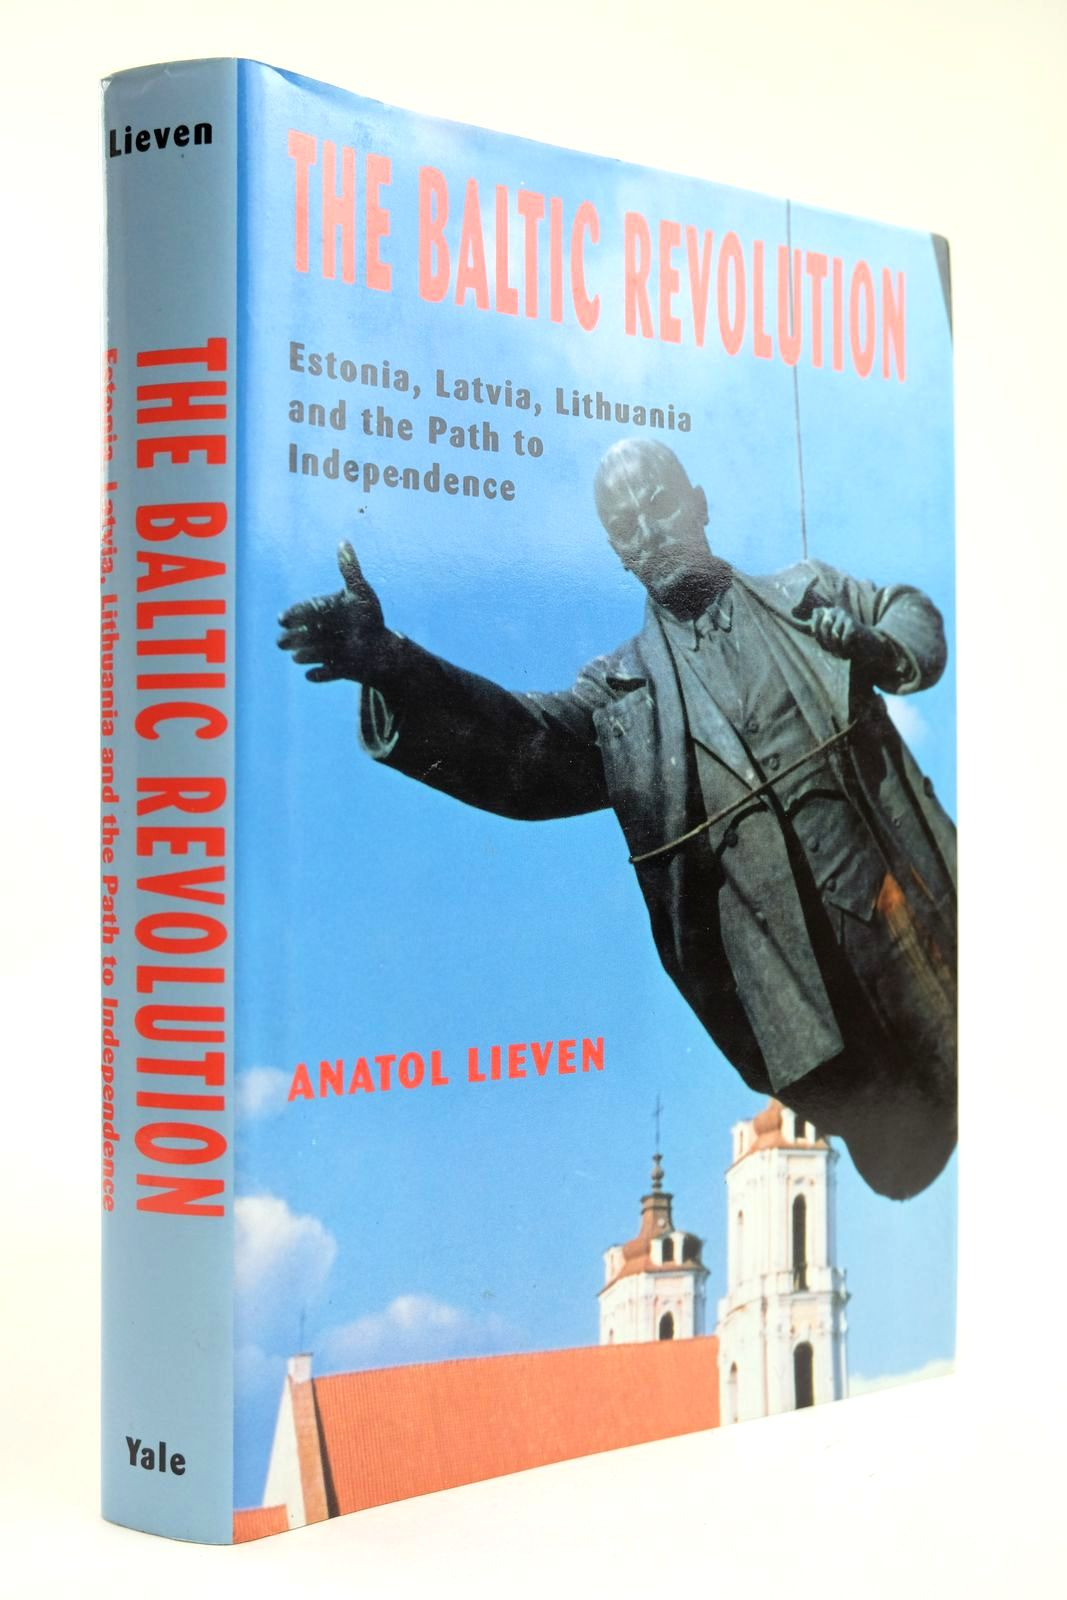 Photo of THE BALTIC REVOLUTION ESTONIA, LATVIA, LITHUANIA AND THE PATH TO INDEPENDENCE- Stock Number: 2132123